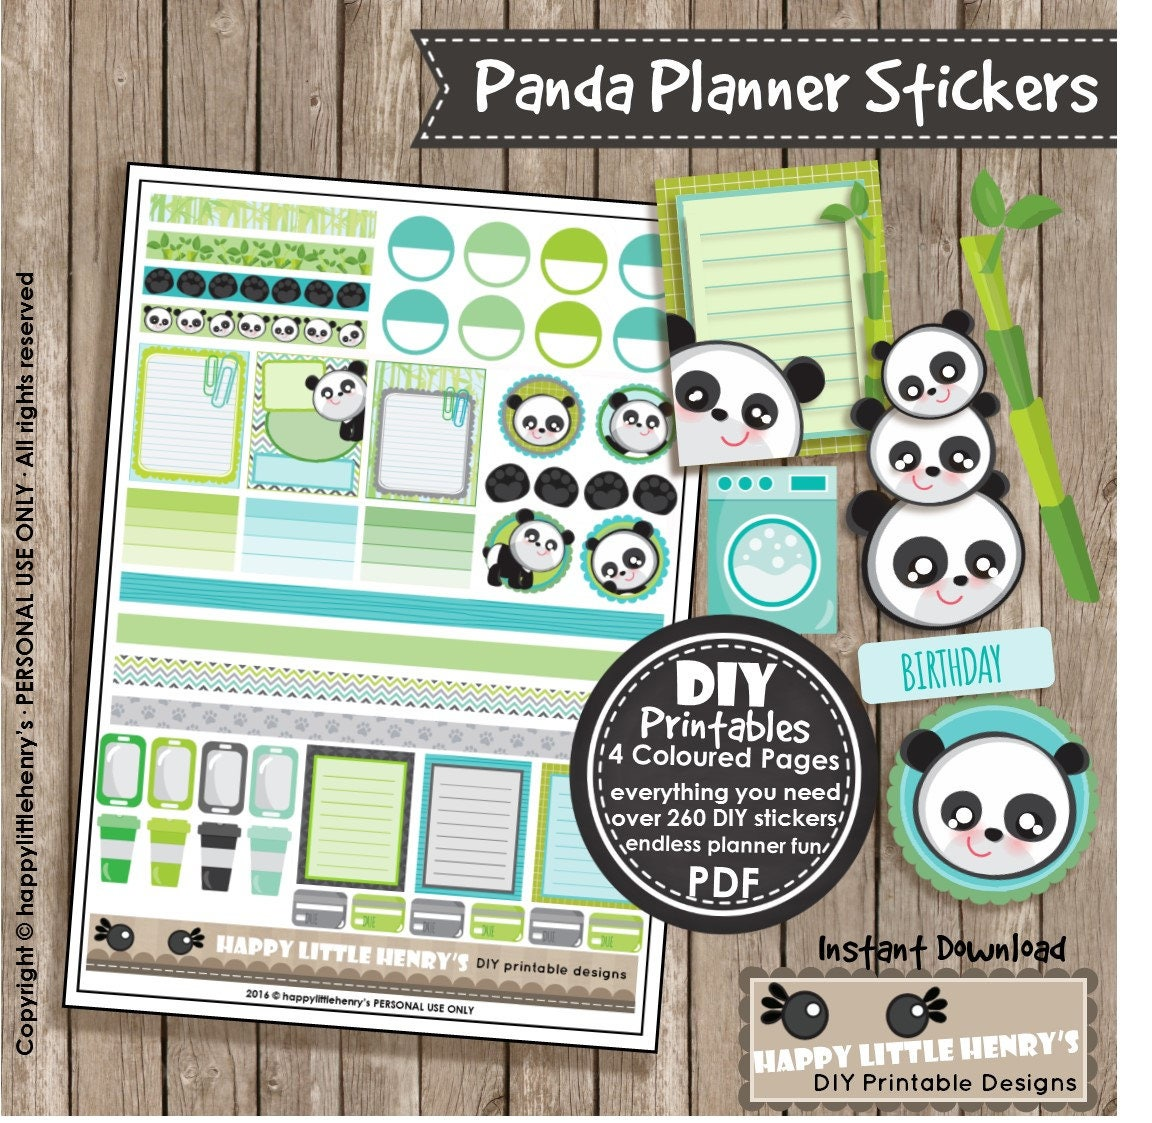 Daily planner, organizer and diary 2013 » free download vector.